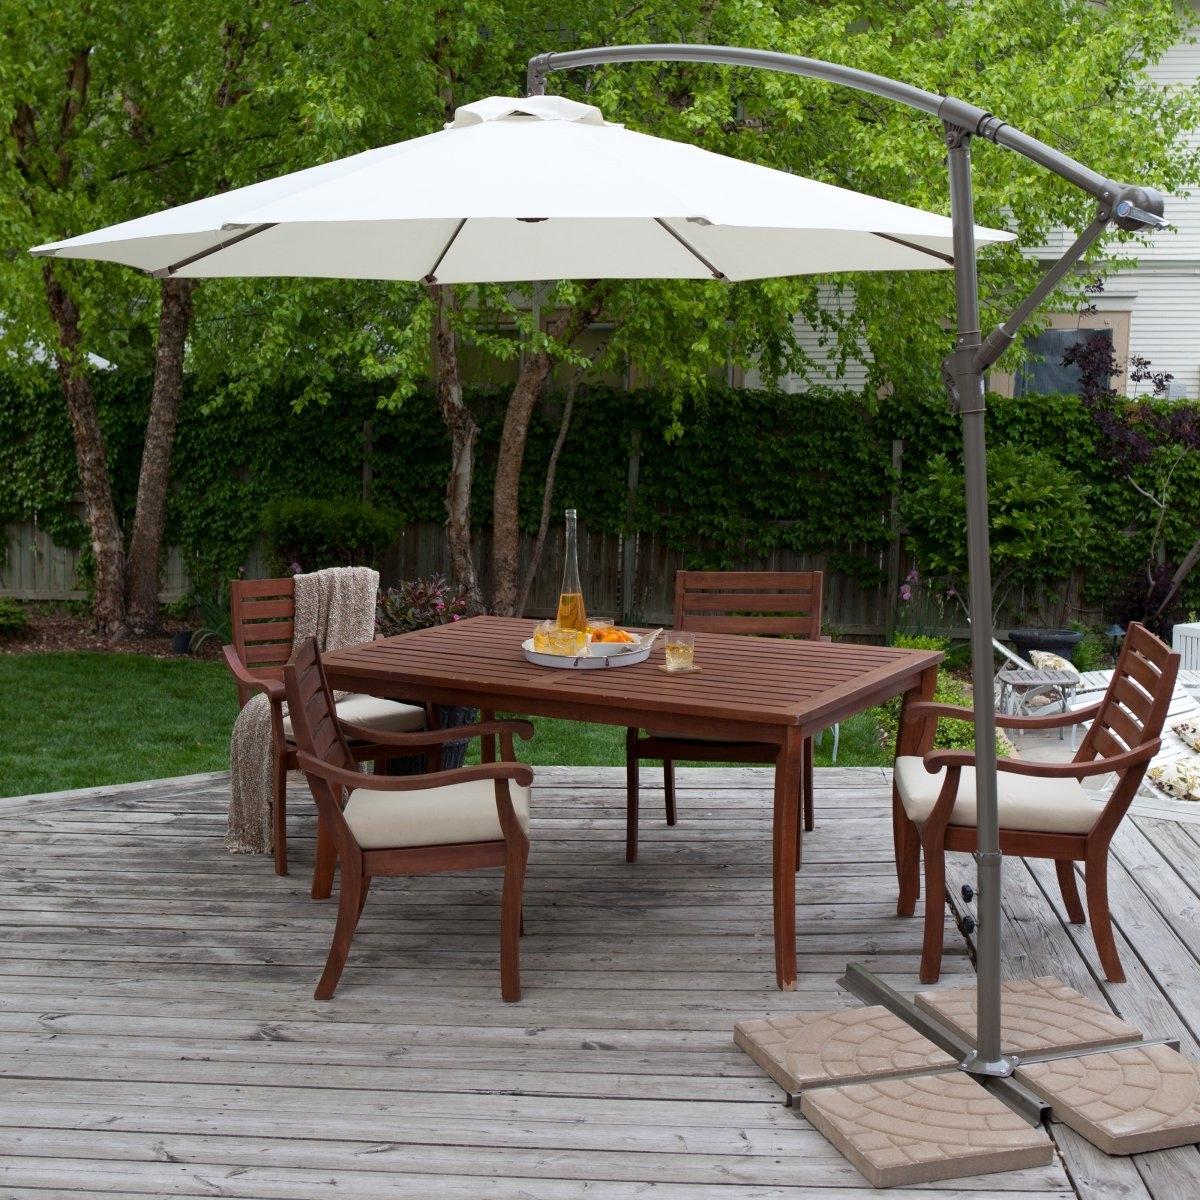 Patio Tables With Umbrella Hole With Regard To Most Up To Date The Patio Table Umbrella For Comfort Gathering — Mistikcamping Home (Gallery 19 of 20)